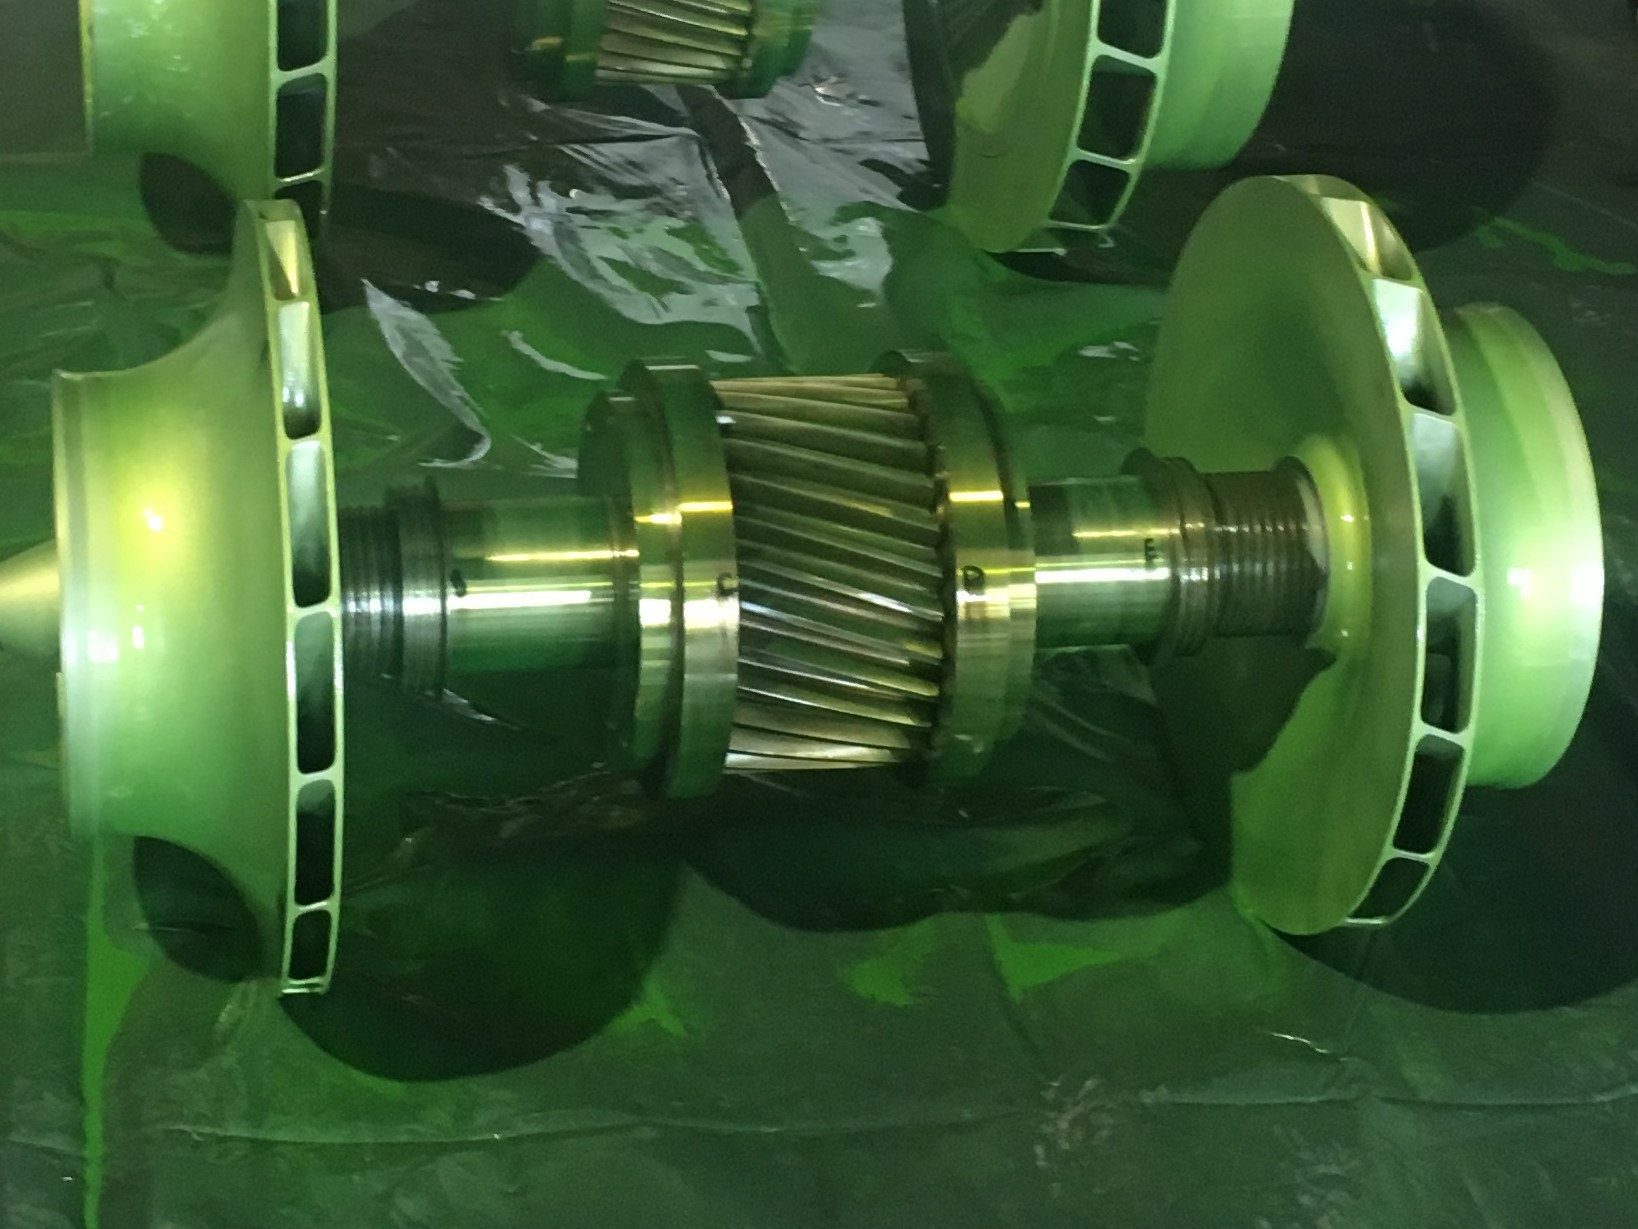 NDT inspection on IG compressor pinions and impellers